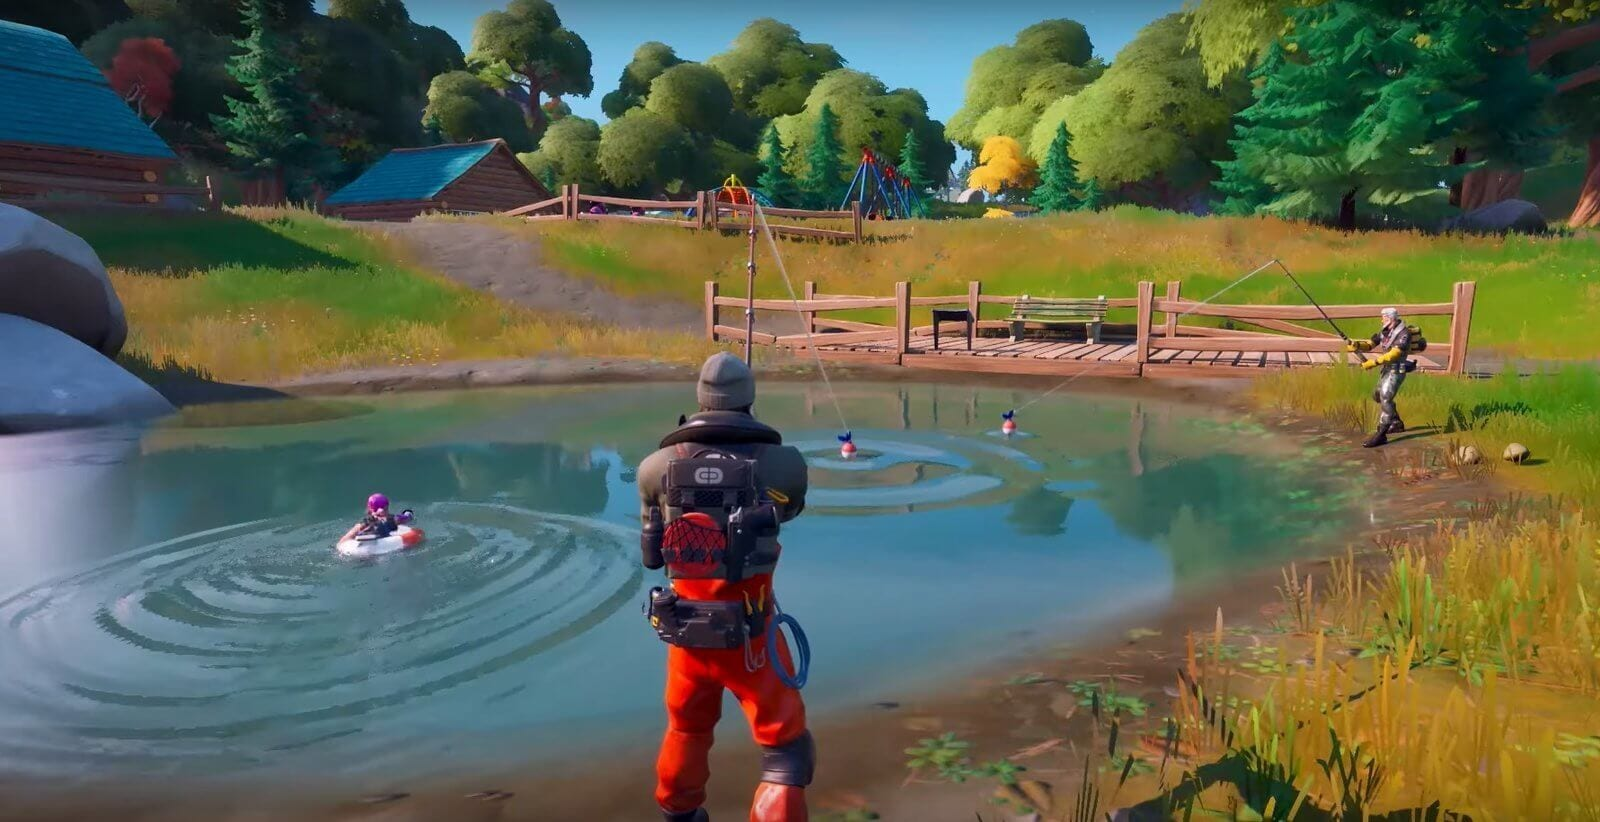 Fortnite Chapter 2 Trailer Intros New Map